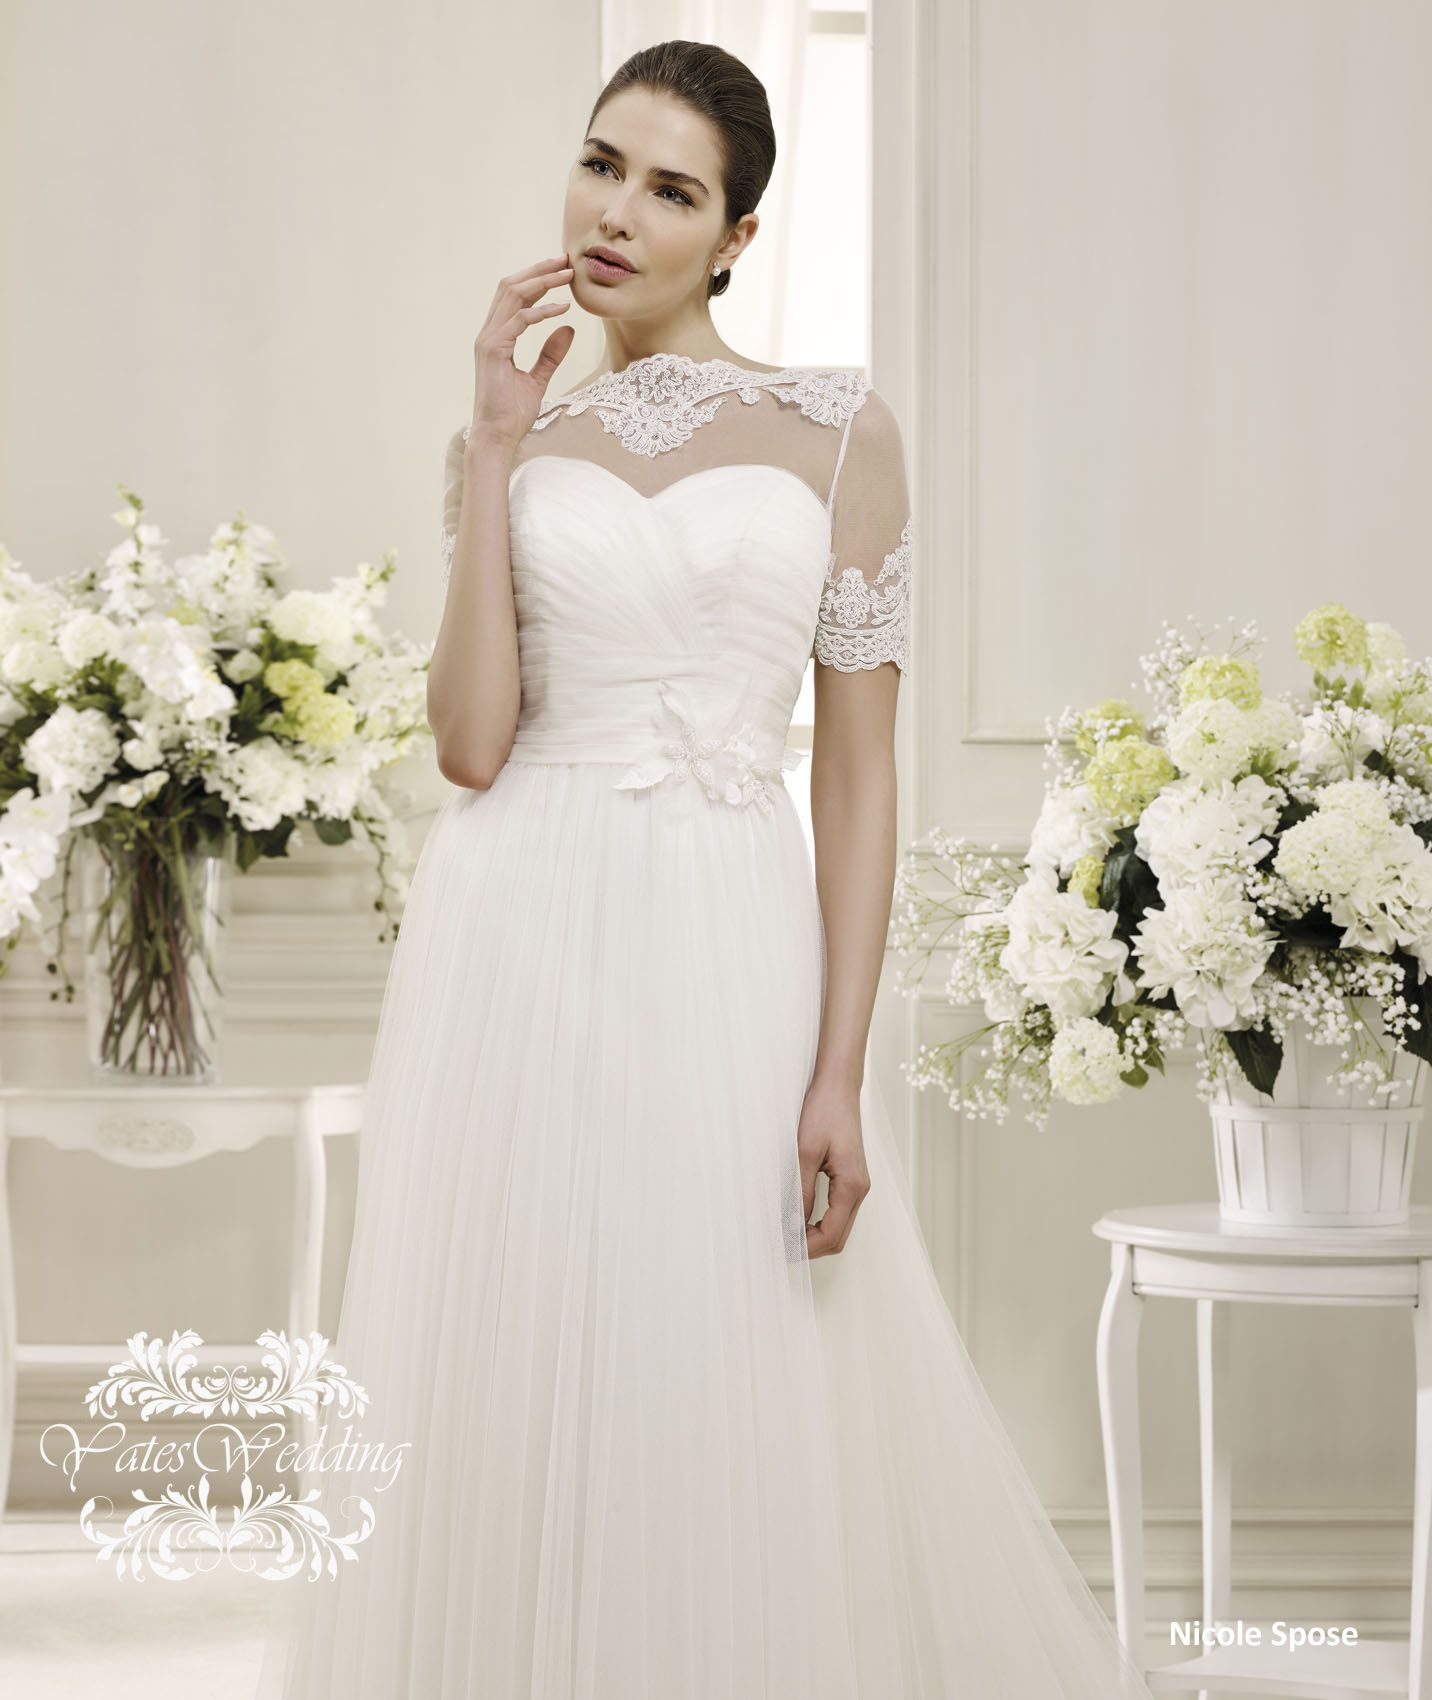 Nicole Spose 2014 Bridal Spring Collection, Find Your Favorite Here!